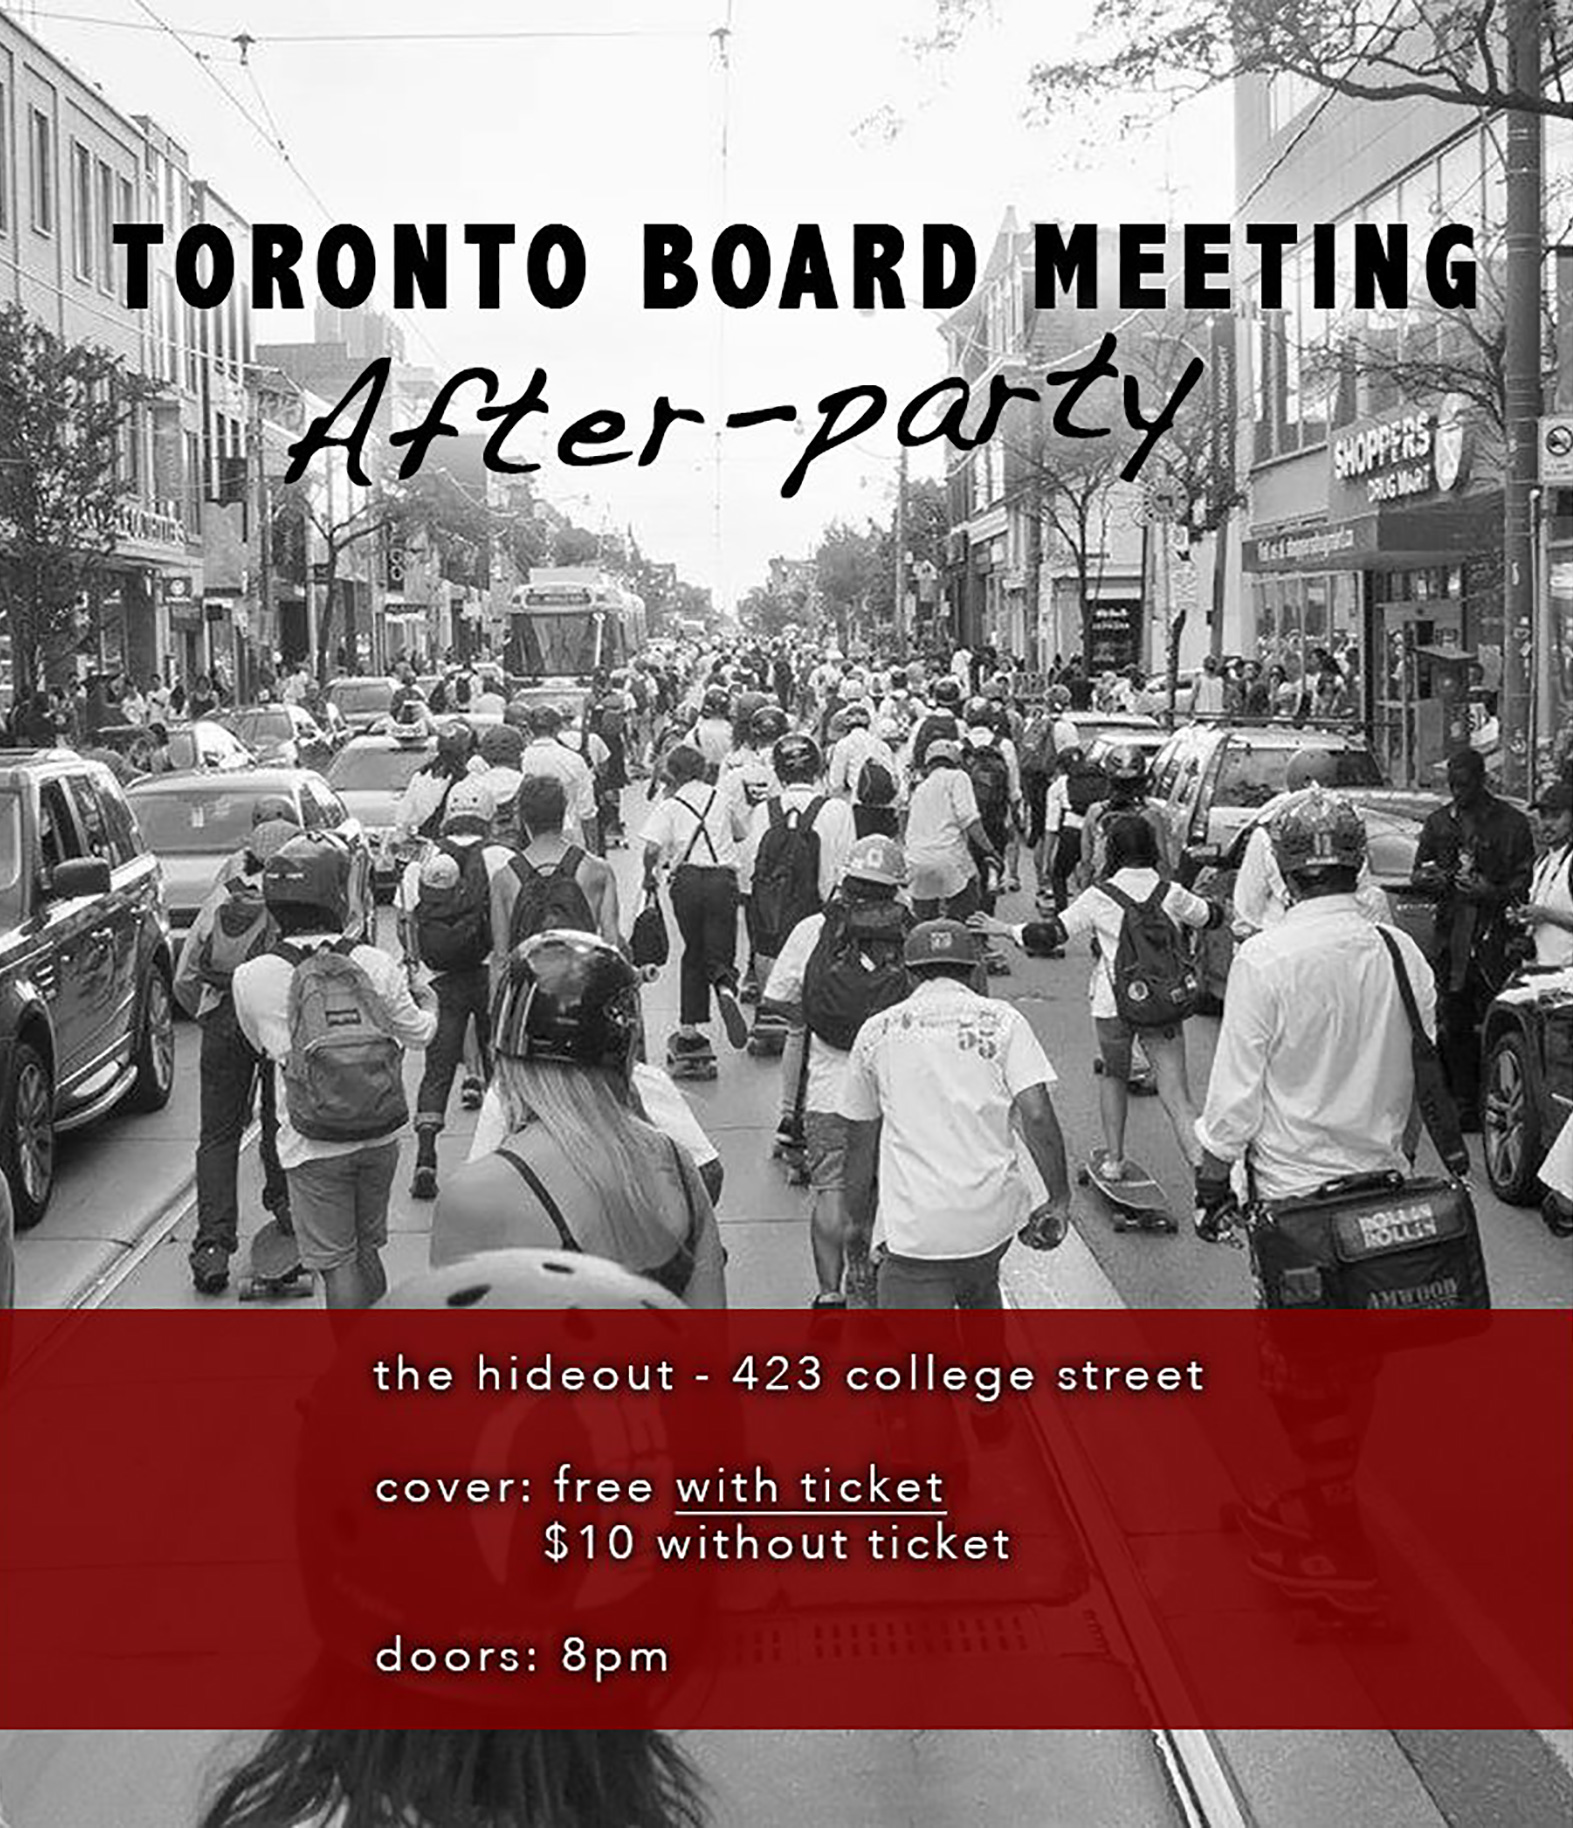 This year, the 19+ official  The 17th Annual Toronto Board Meeting  After-Party, hosted at  The Hideout Toronto  423 College Street, will double as the farewell bash for one of the Toronto longboarding scene's favourites  Copper Crown ! This will be the party of the century, don't miss out!   Admission is free for all Board Meeting attendees WITH TICKET. ***Tickets can be received from organizers at David A Balfour Park before hill drop*** $10 cover fee will be charged to the general public/those who do not have a ticket.   Doors: 8pm//Music: 9pm Cover: Free or $10   Copper Crown  (alternative/rock)  Theoretically Nameless Band  (rad KW ska/rock)  Hysterics  (killer grunge/punk)  My Mysterious Friend  (beats for days)